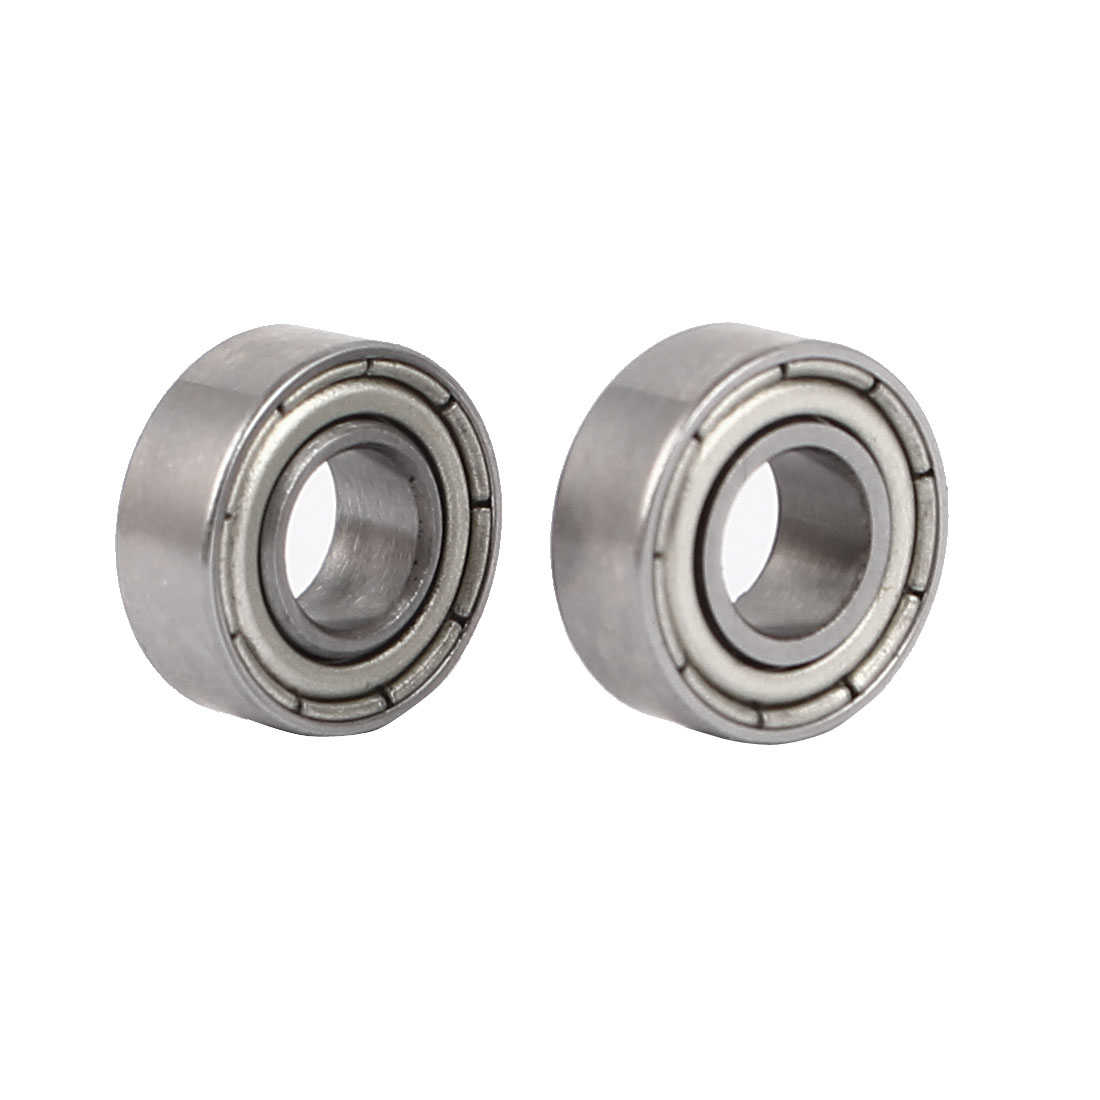 ZZ685 Dual Steel Shields Deep Groove Ball Bearing 11mmx5mmx5mm 2pcs